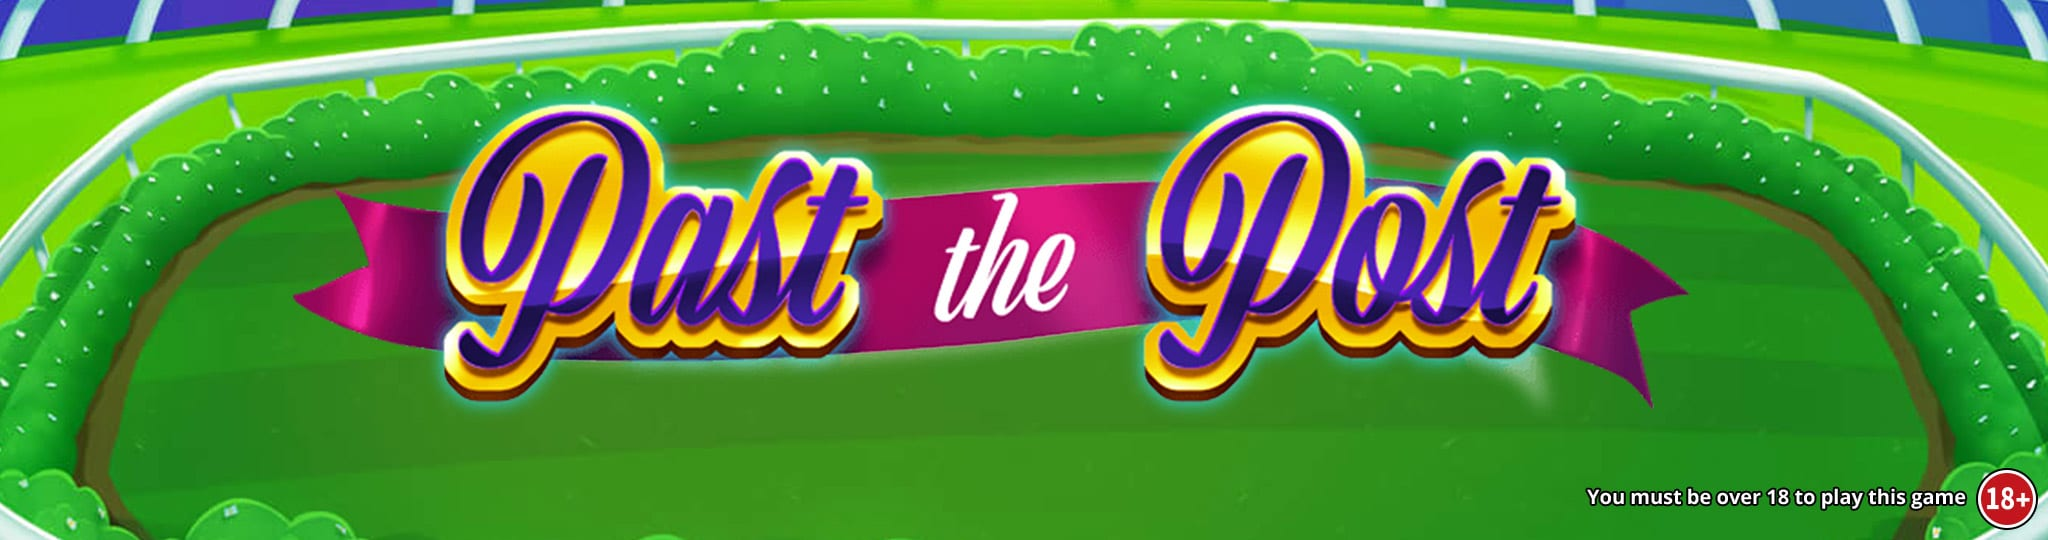 past the post slots game logo